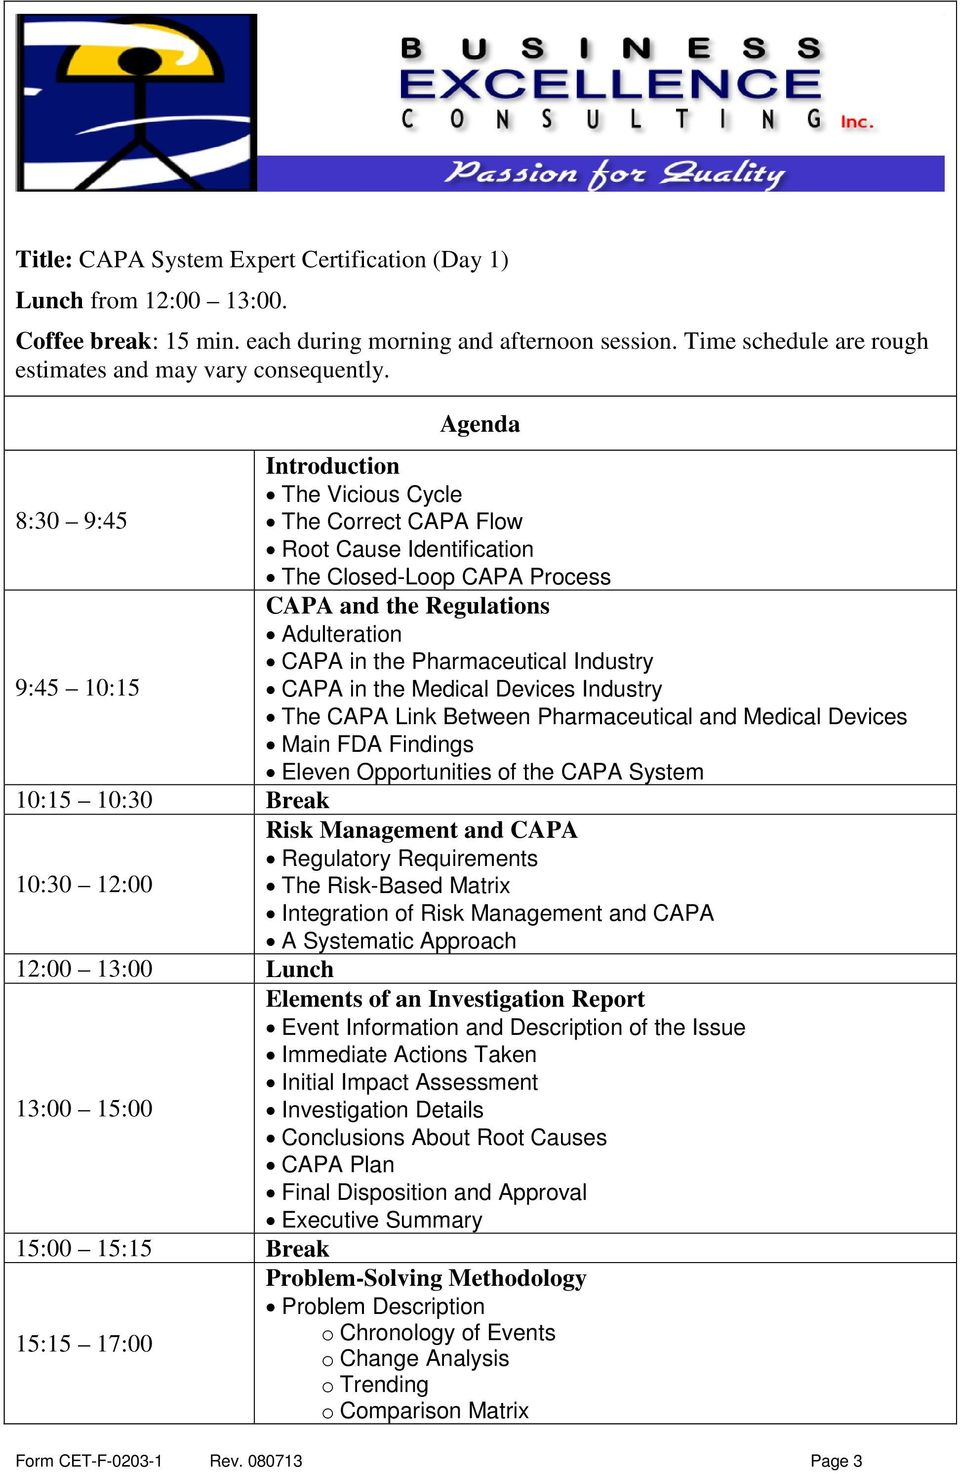 CAPA System Risk Management and CAPA Regulatory Requirements 10:30 12:00 The Risk-Based Matrix Integration of Risk Management and CAPA A Systematic Approach Elements of an Investigation Report Event